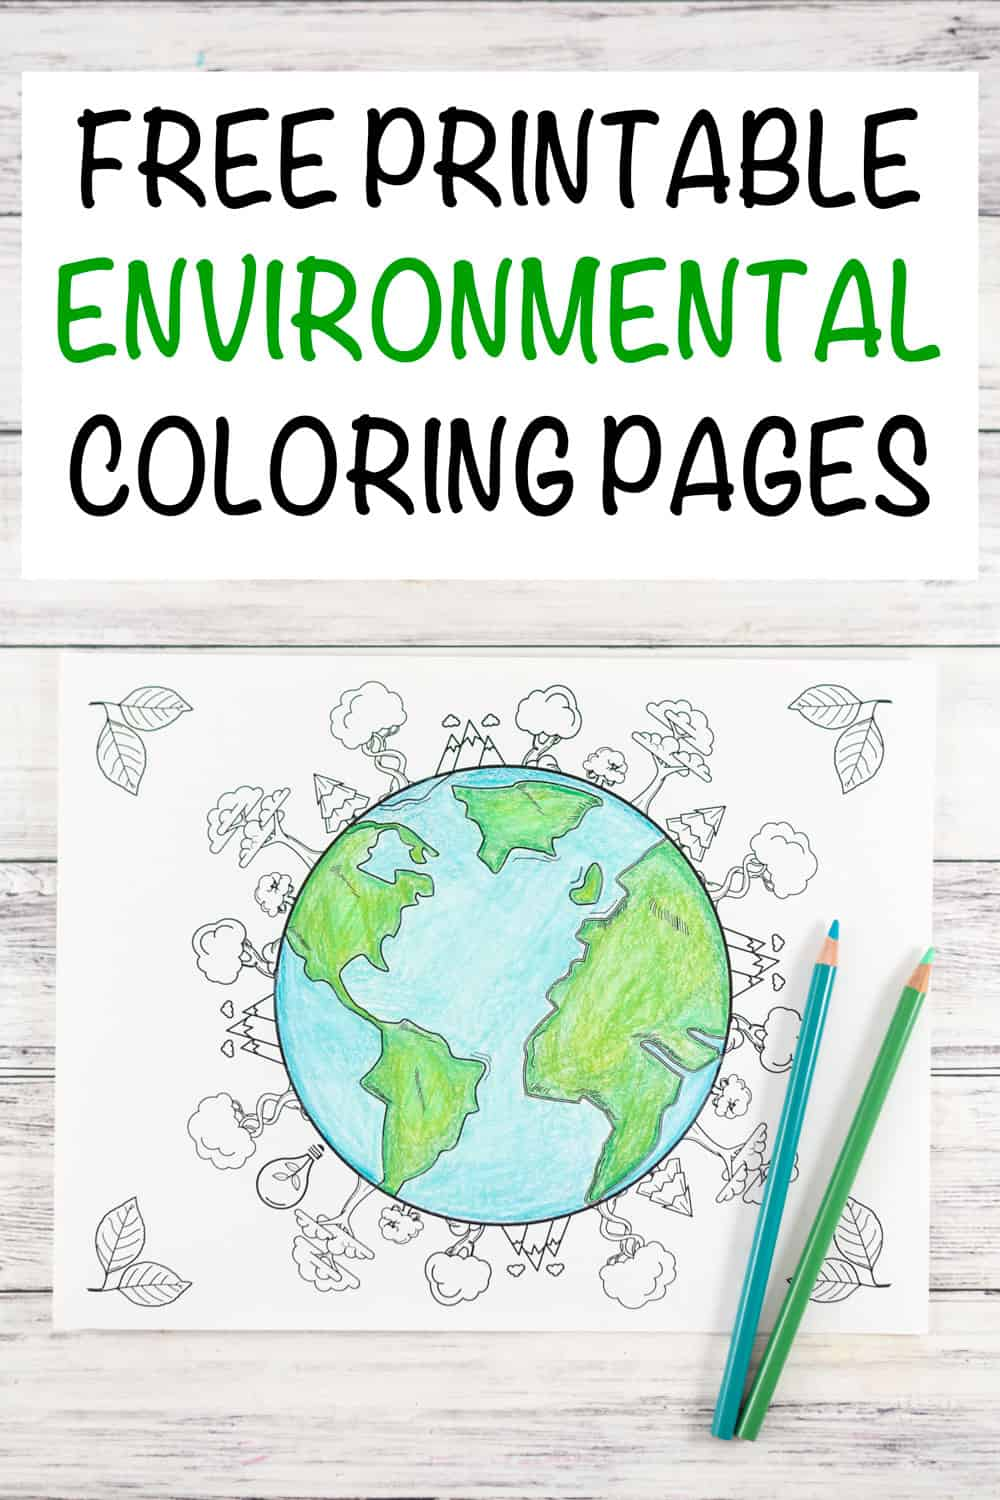 free-printable-environmental-coloring-pages